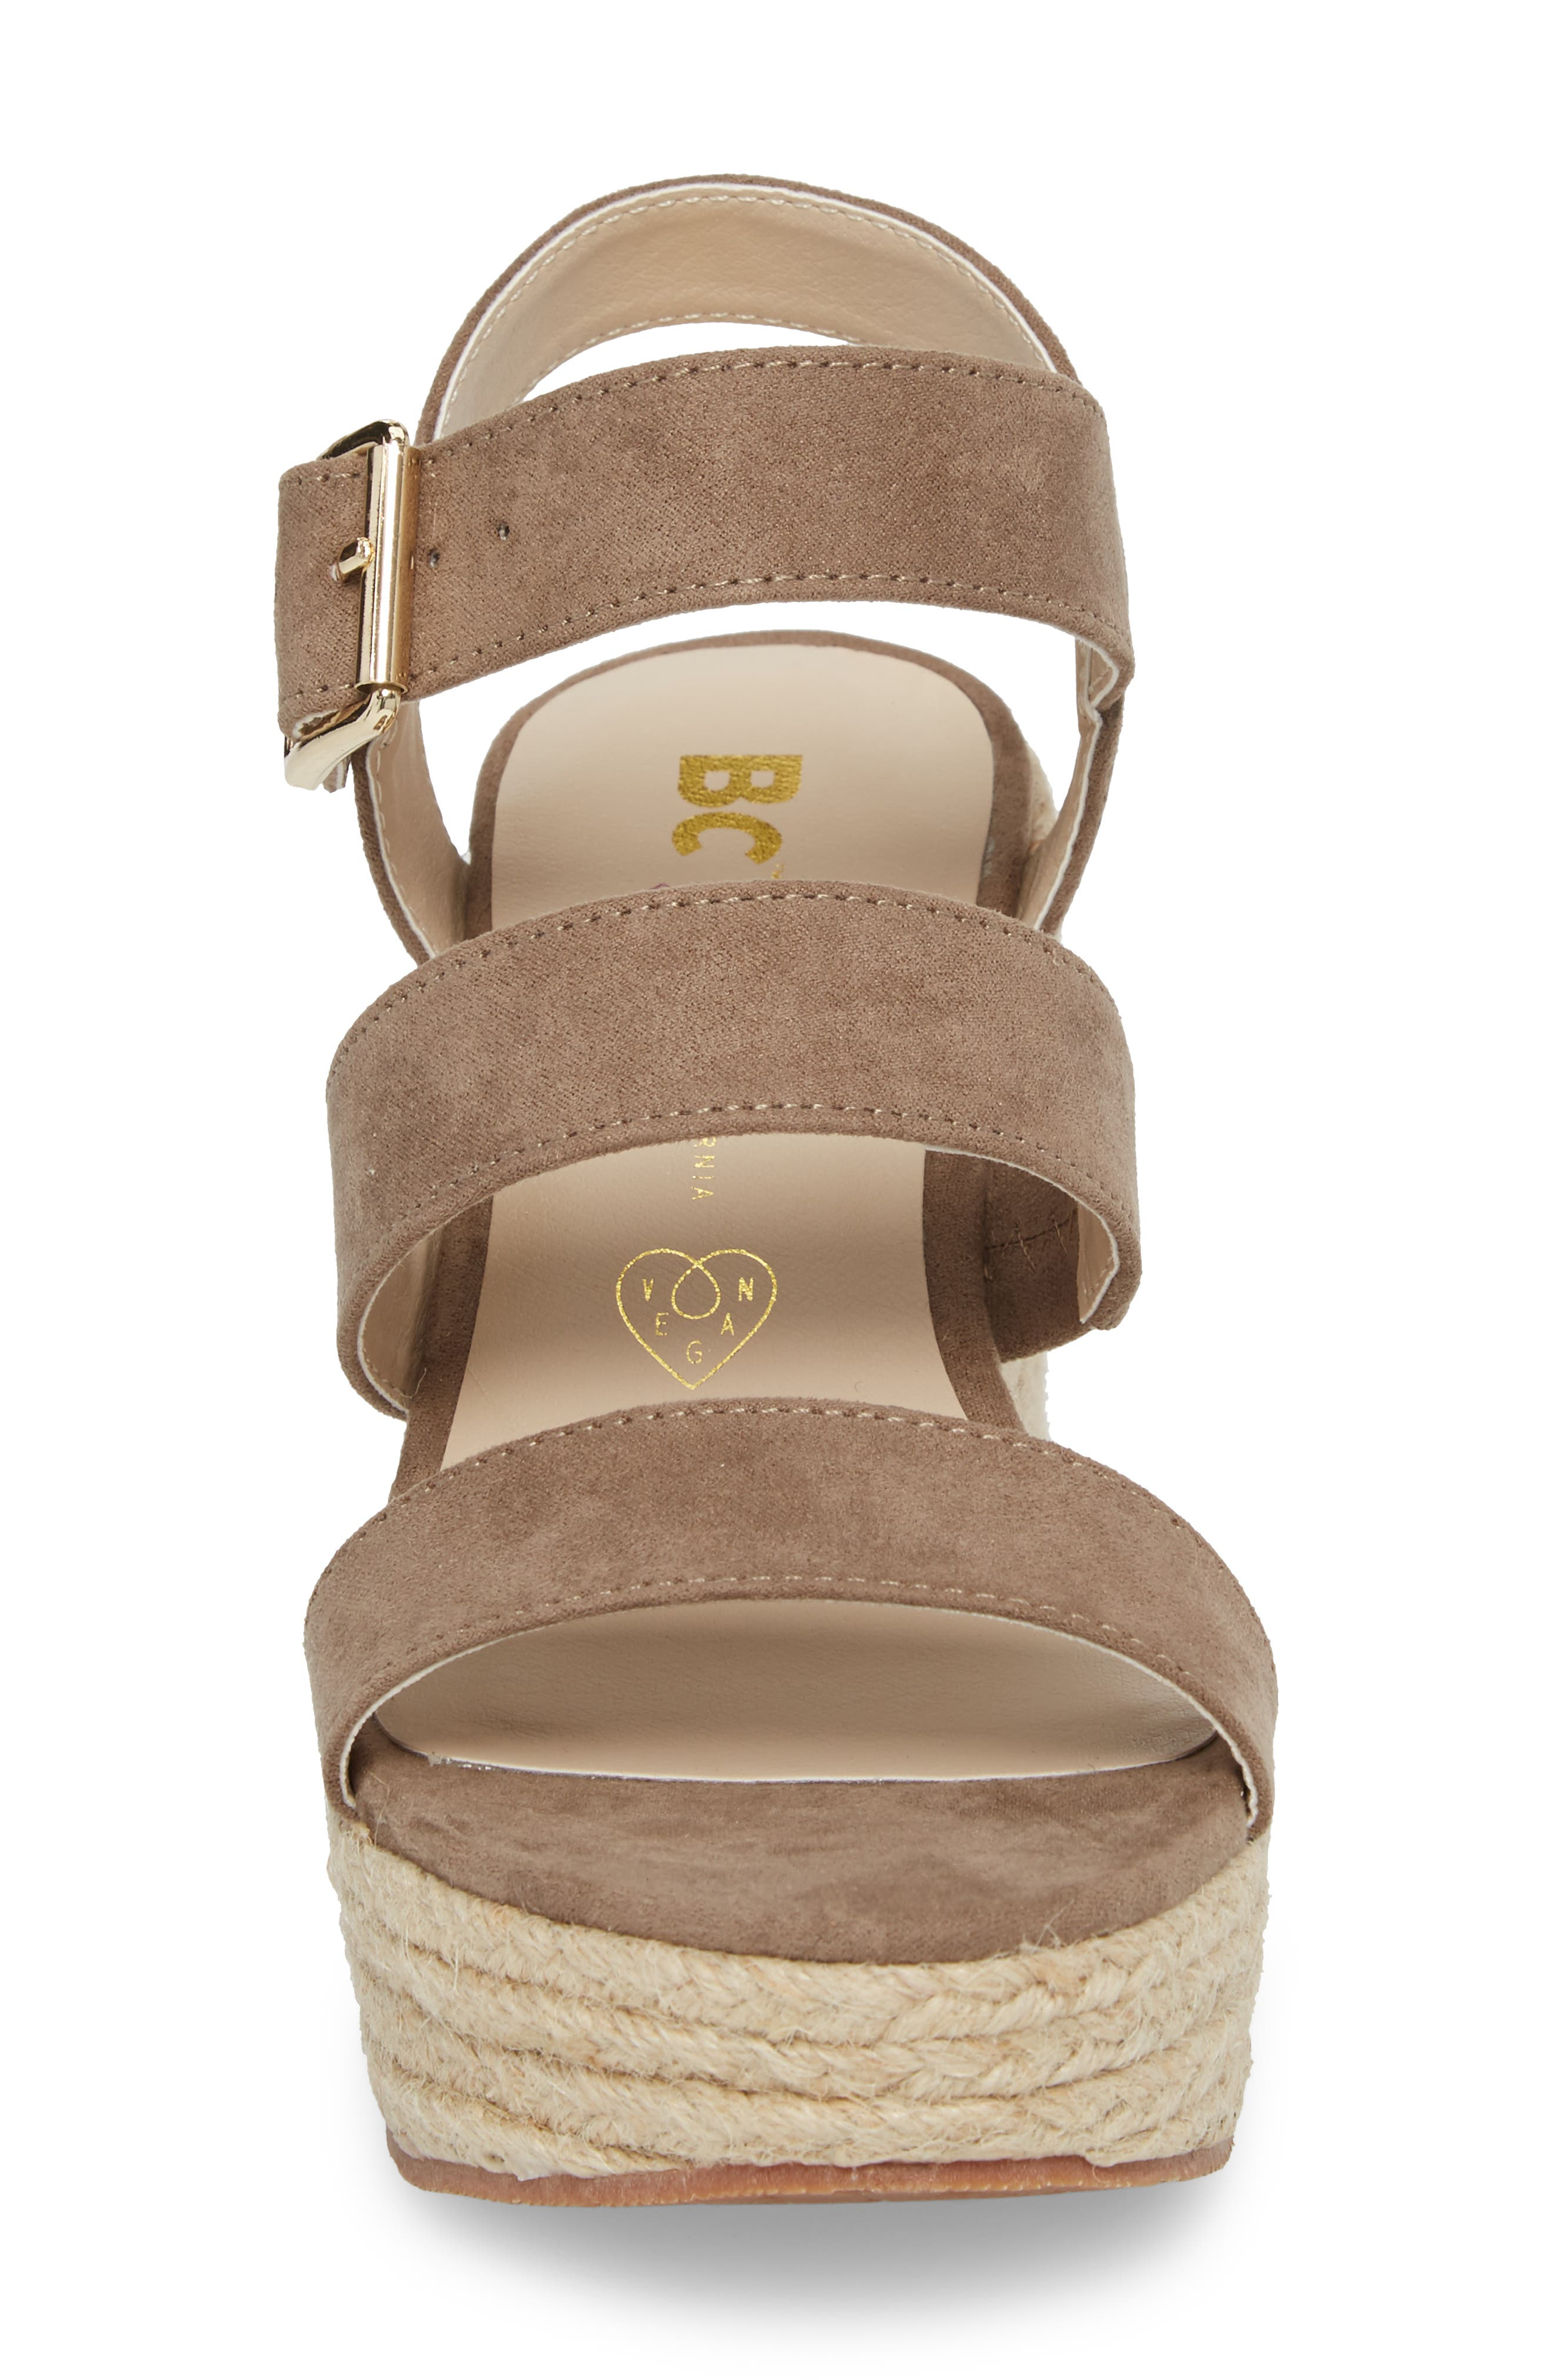 Snack Bar Espadrille Wedge Sandal,                             Alternate thumbnail 4, color,                             Taupe Suede